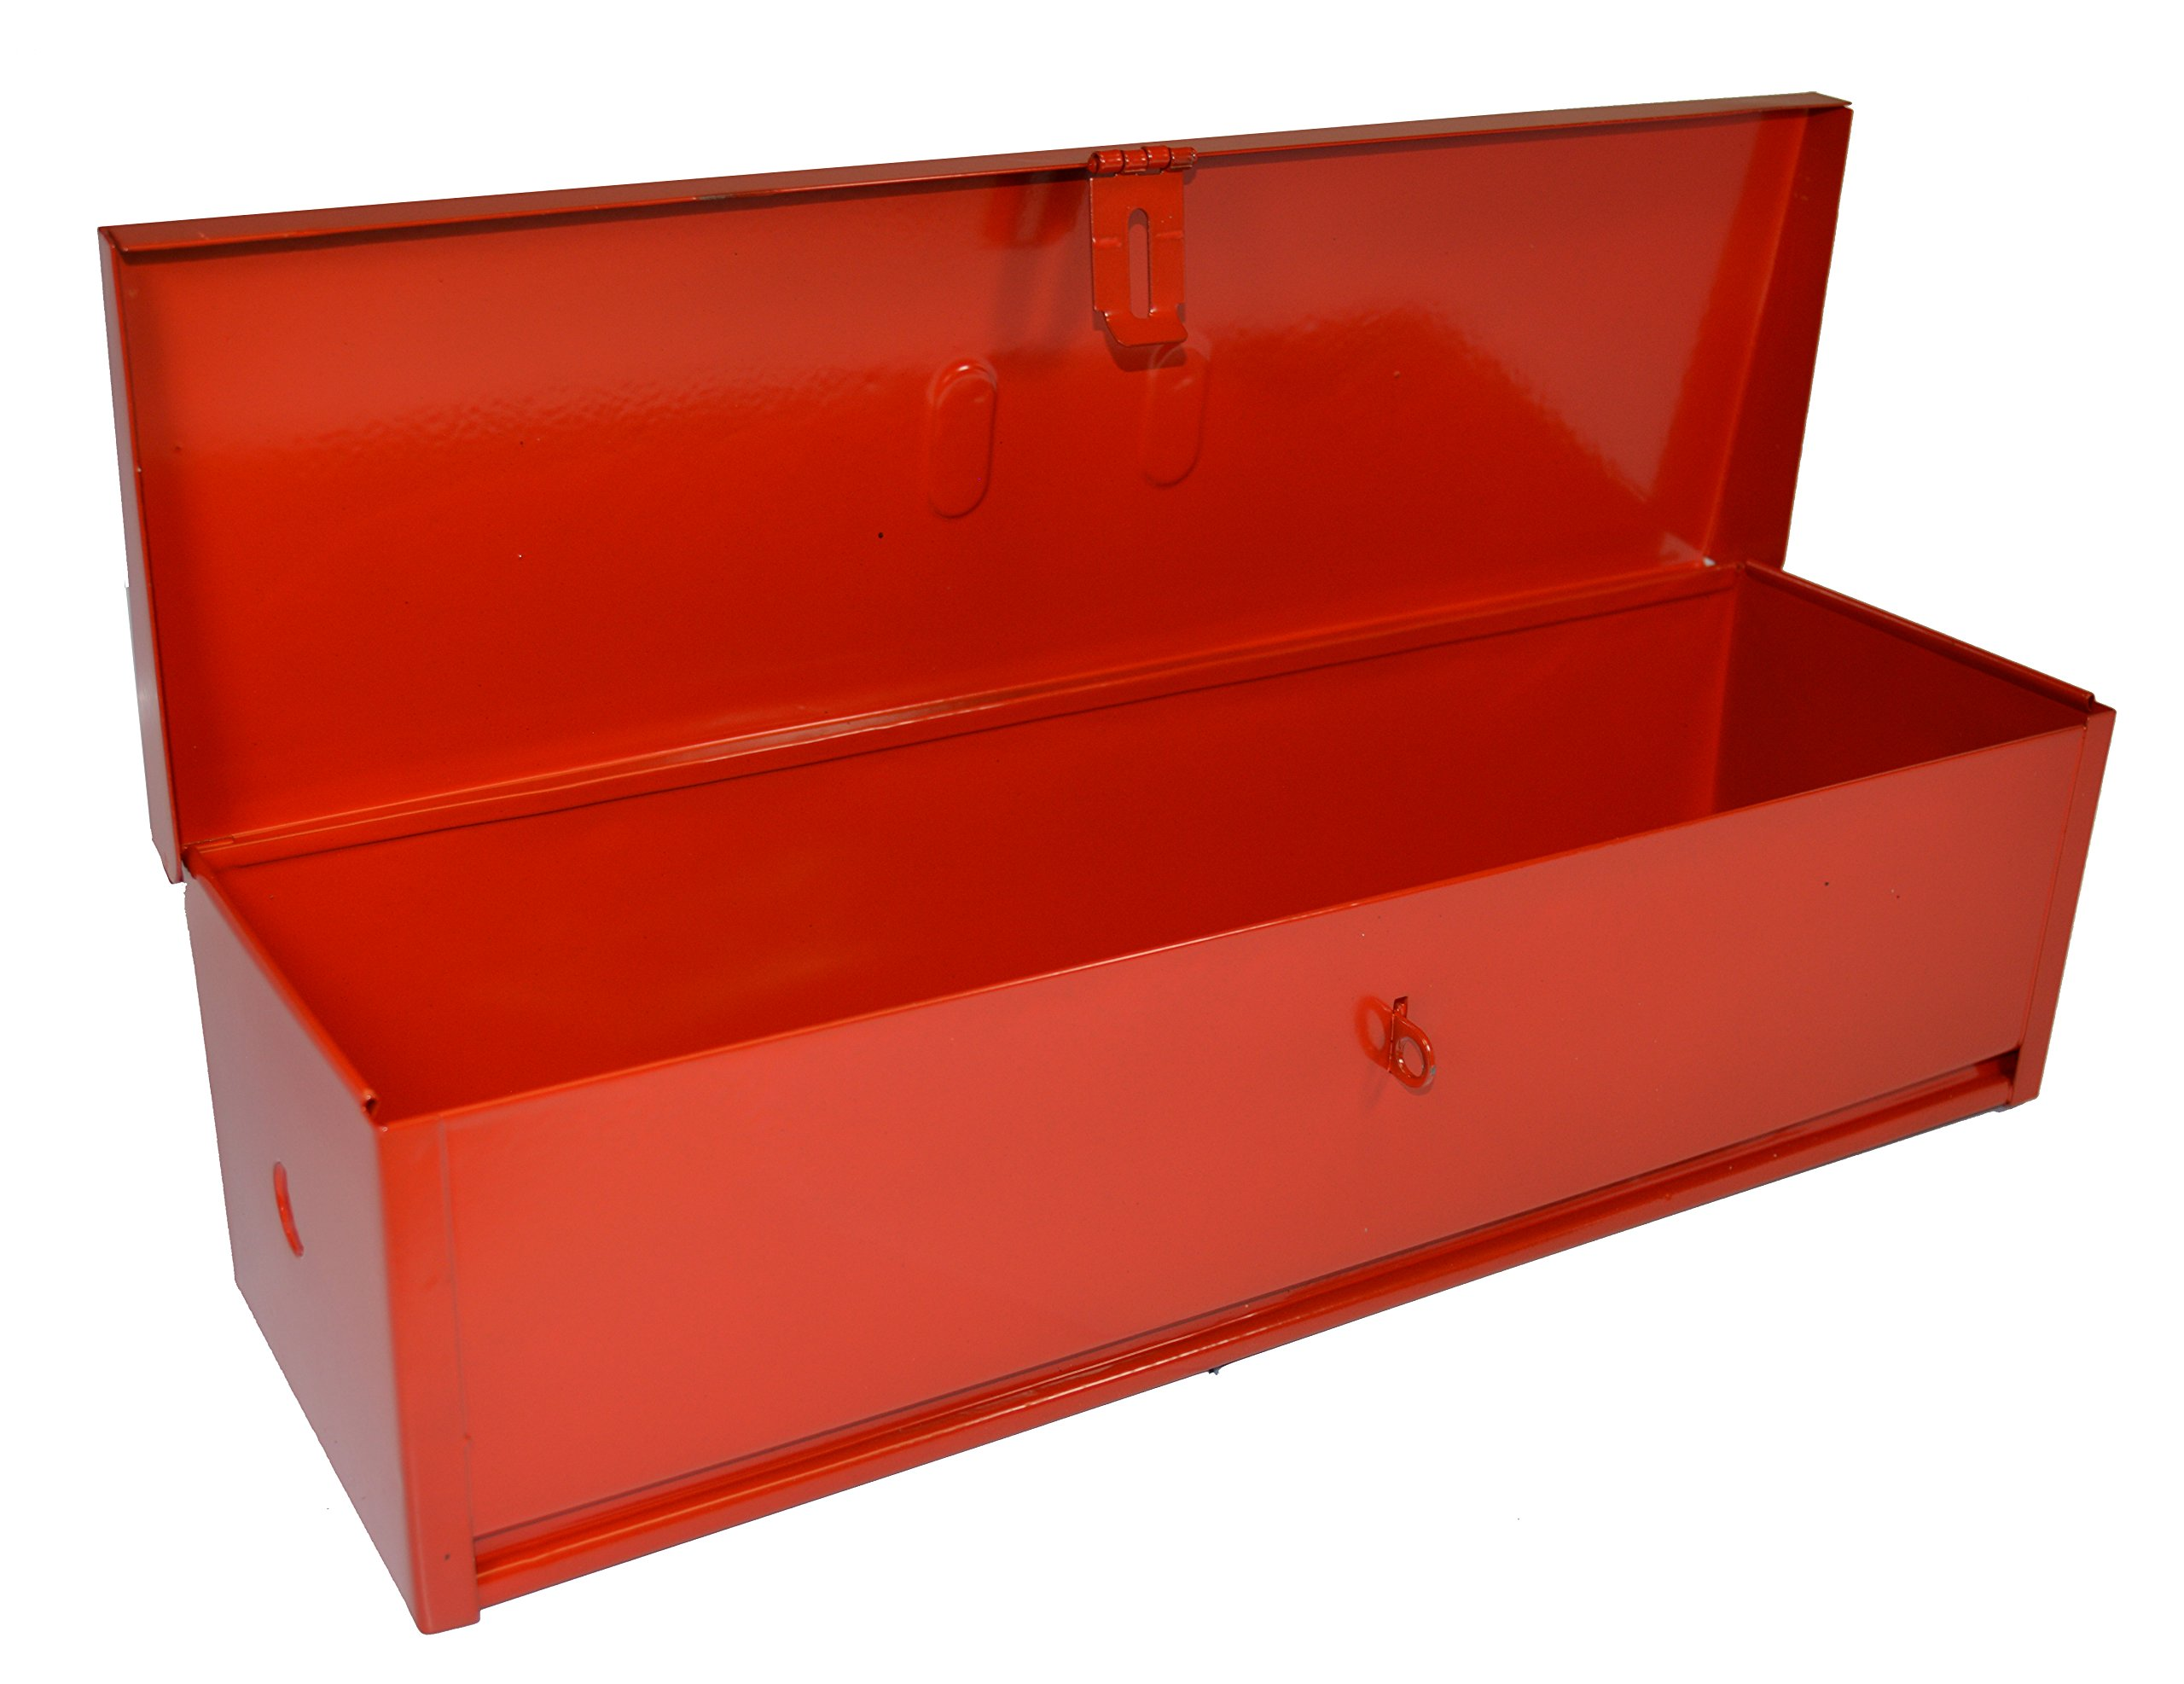 RanchEx 102419 Tool Box - Portable For Trucks/Tractors, Mounting Hardware Included - 16'' - Red